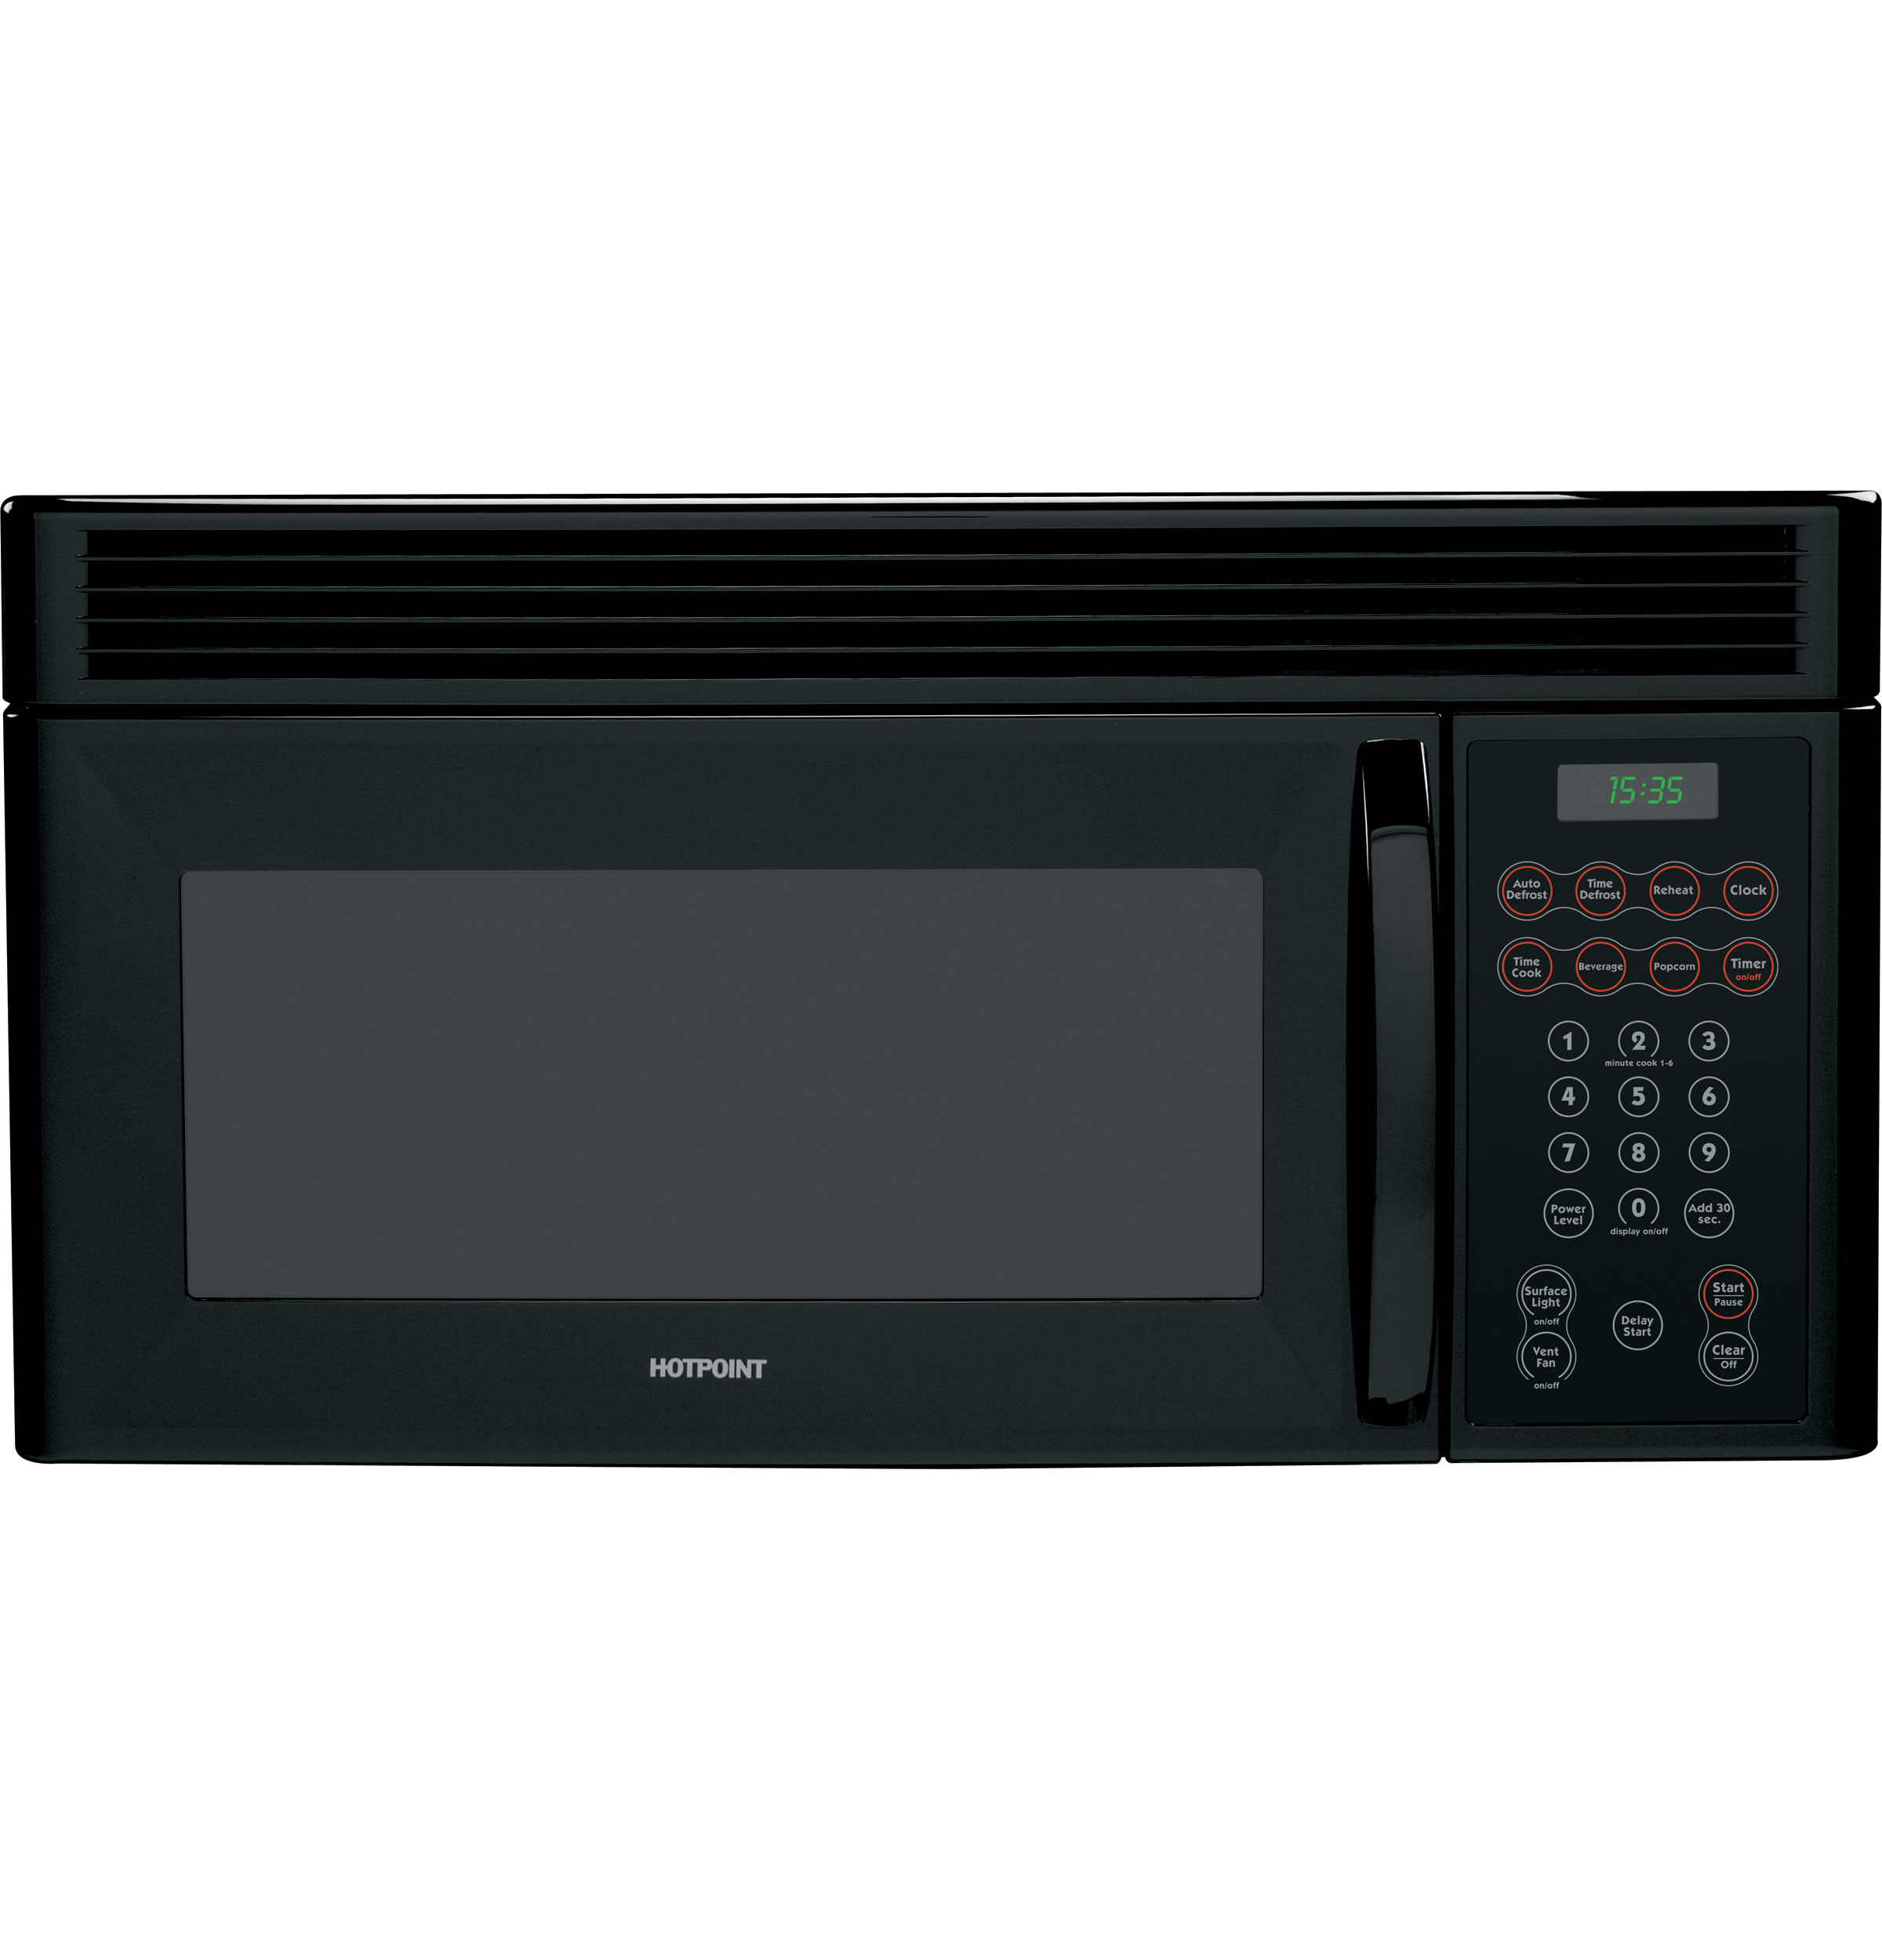 Hotpoint rvm1335bc hotpoint® 1. 3 cu. Ft. Counter saver plus.